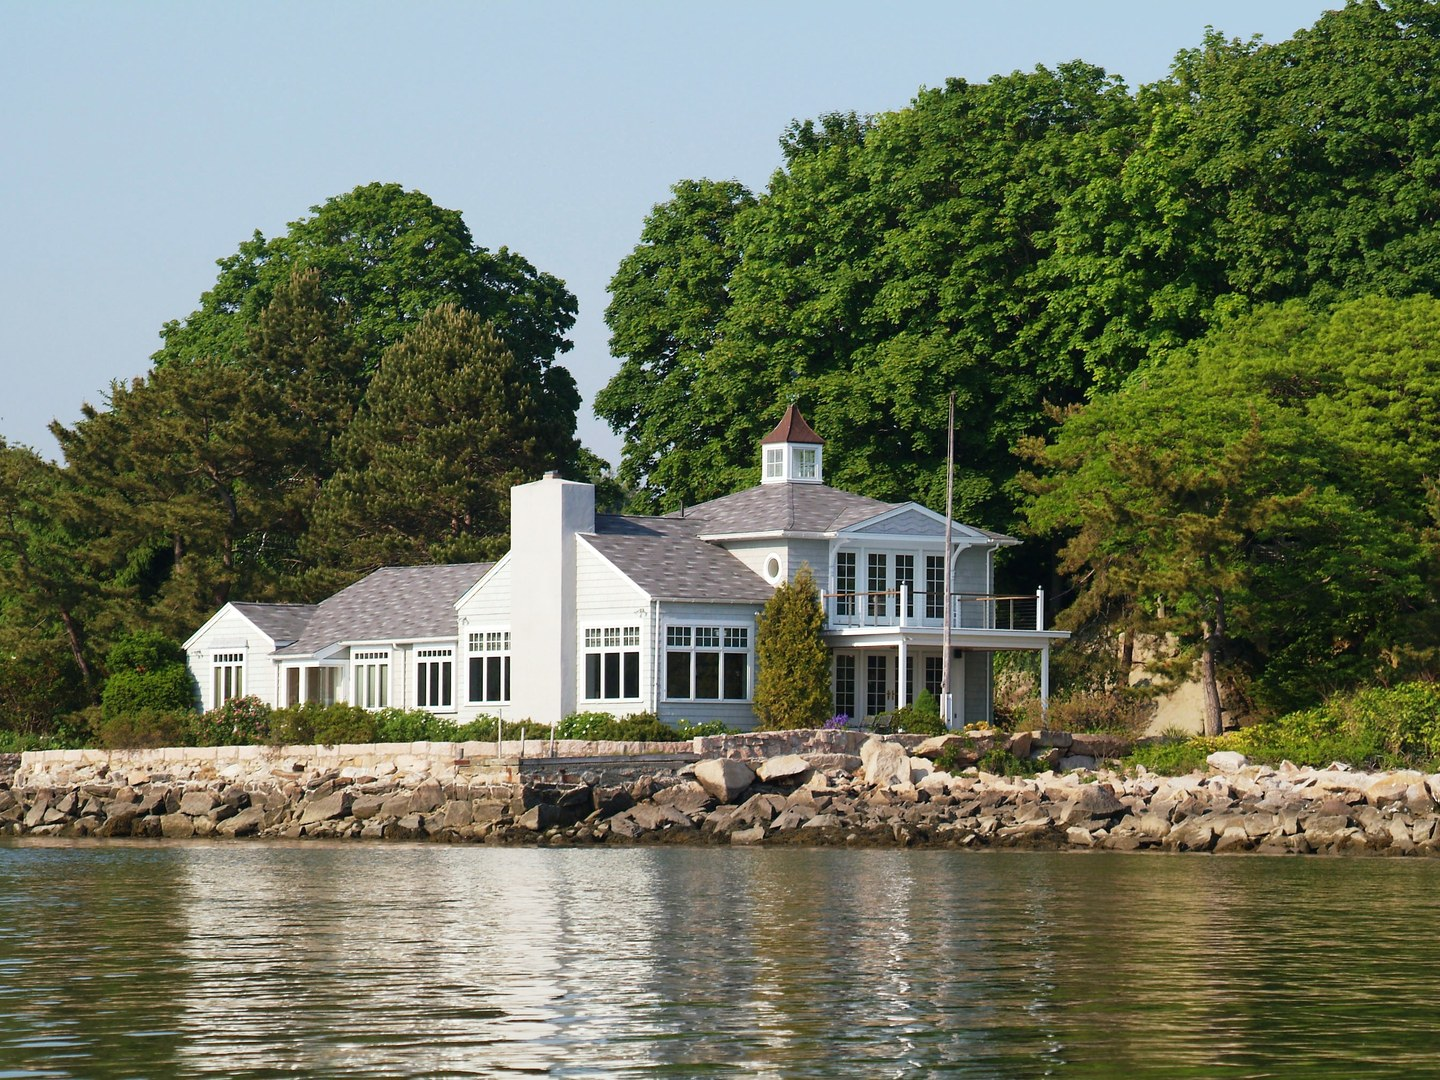 A small house in a body of water at Thimble Islands Bed & Breakfast.